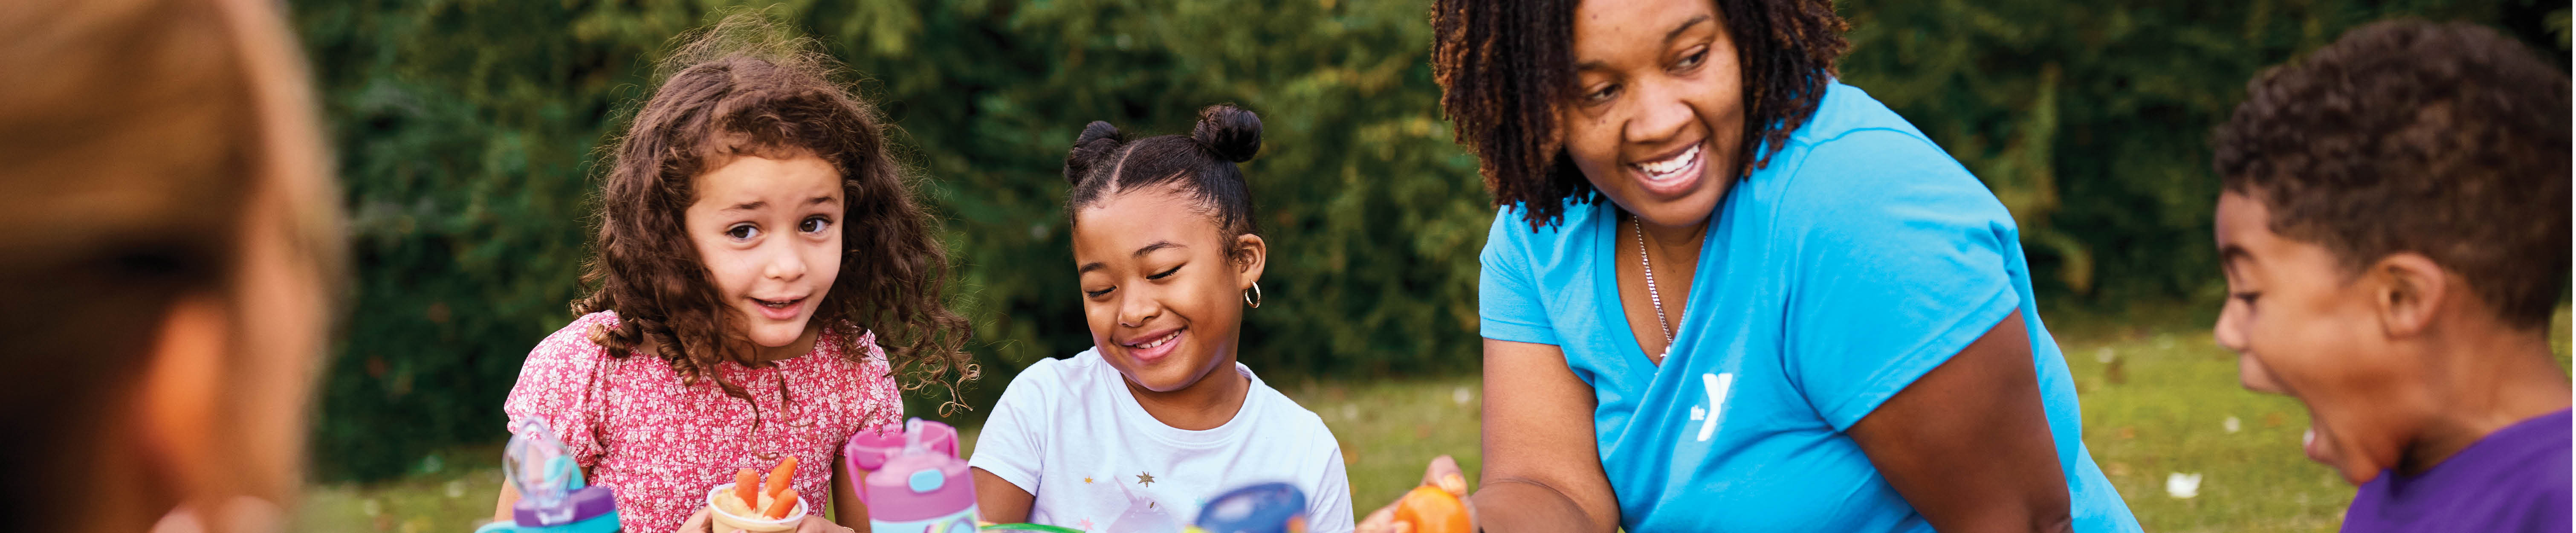 Summer Day Camp | YMCA of Greater Waukesha County